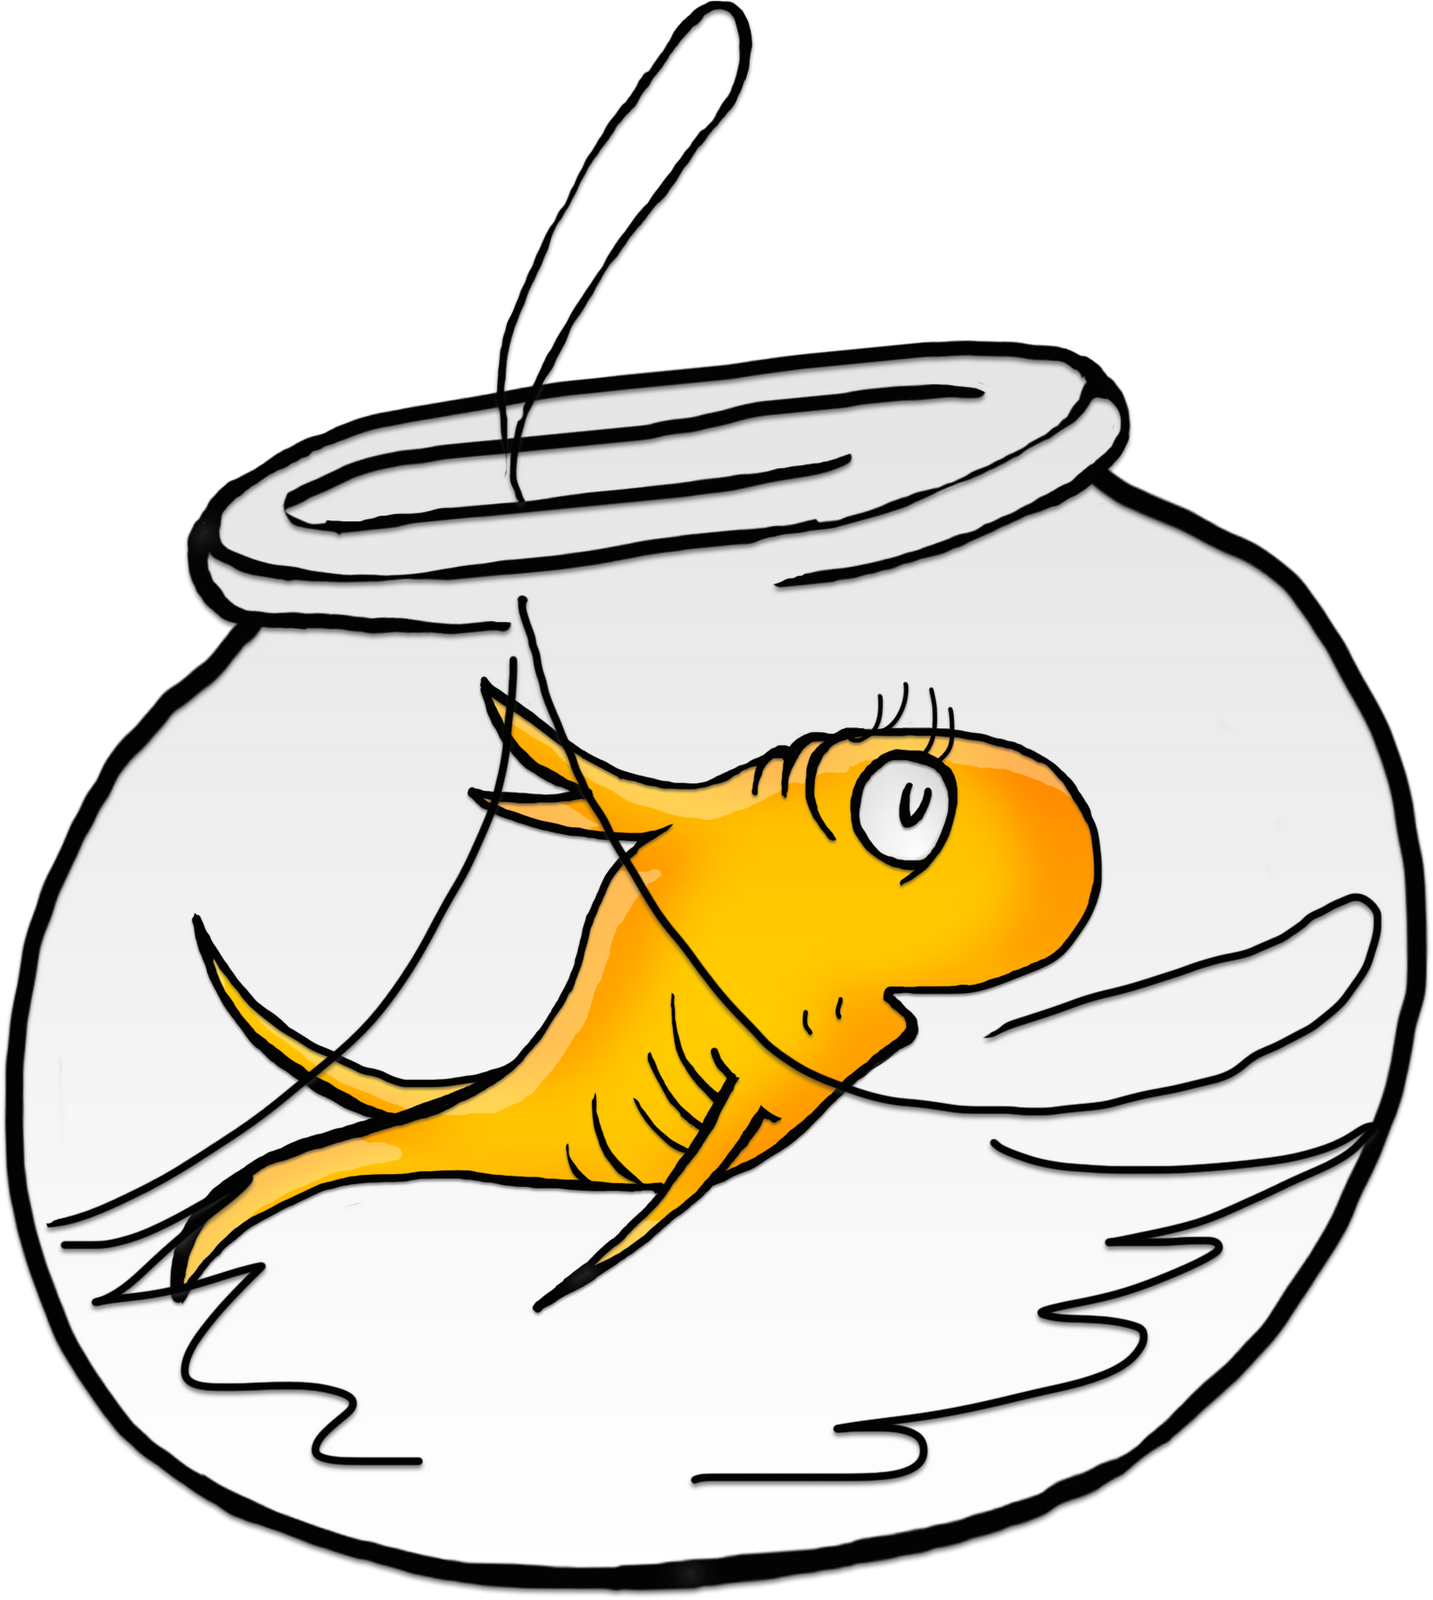 Seuss bowlwithfish white png. Fishing clipart bowl